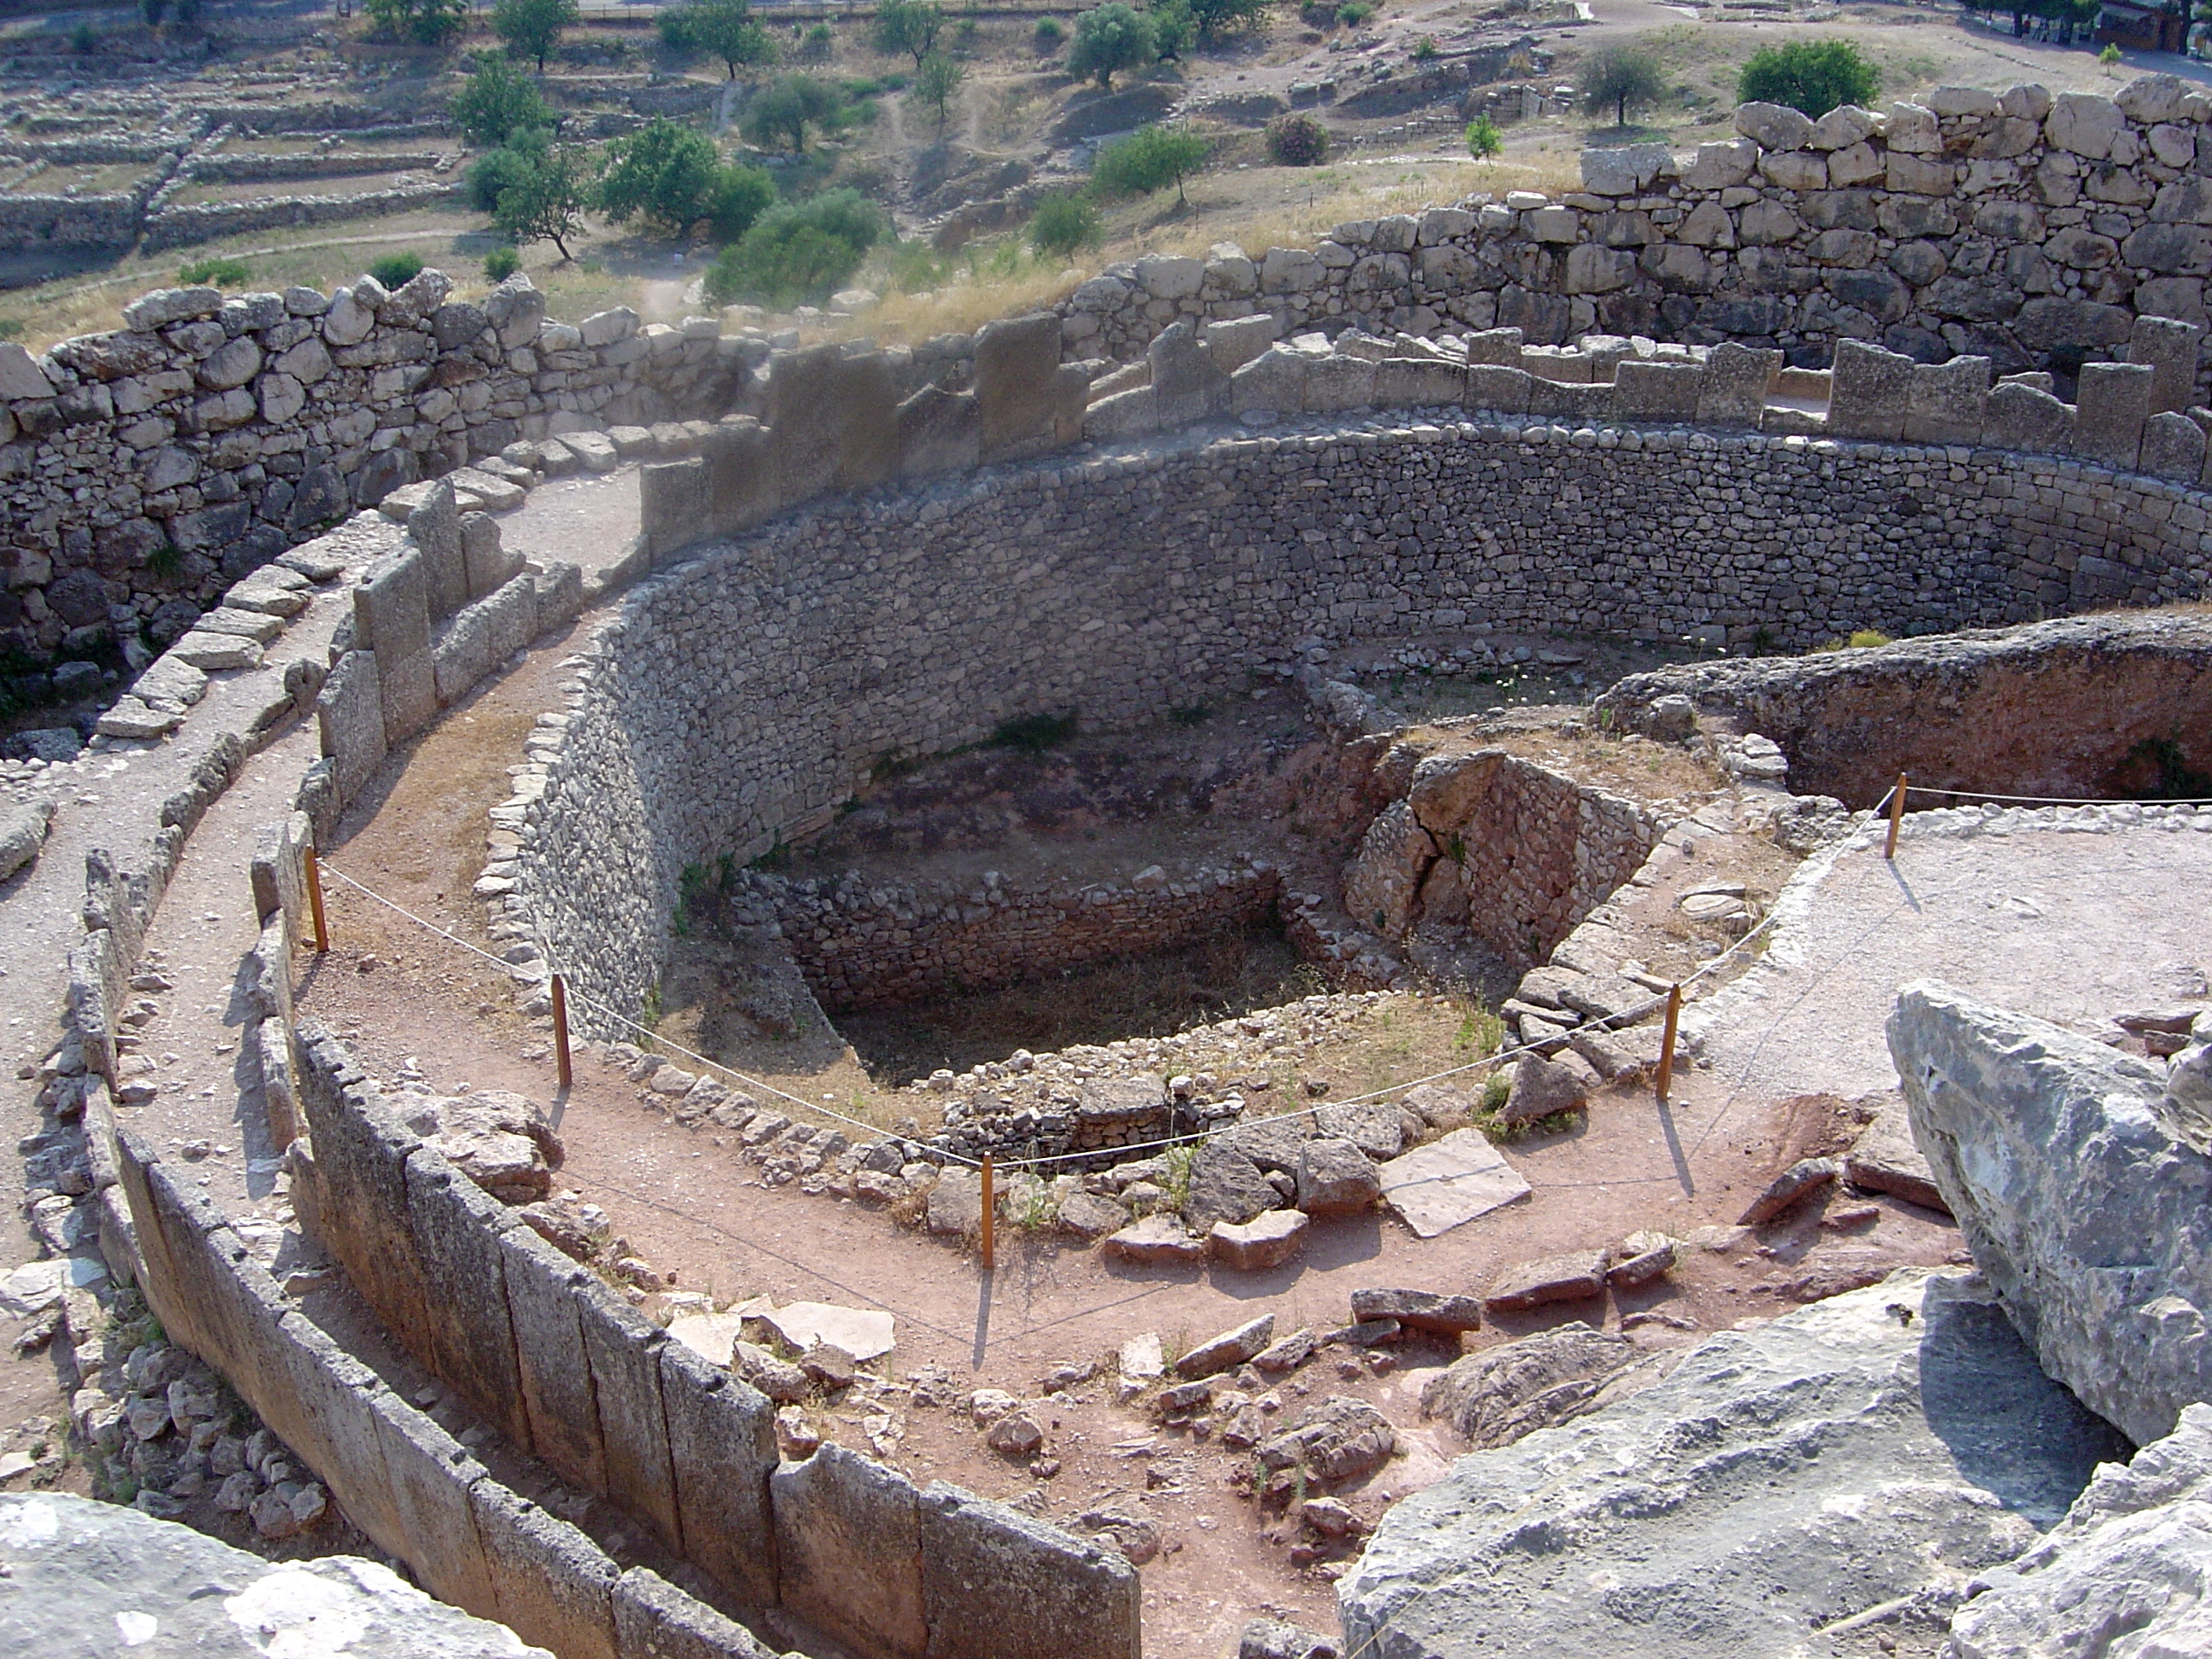 http://upload.wikimedia.org/wikipedia/commons/c/c6/Mycenae_ruins_dsc06388.jpg